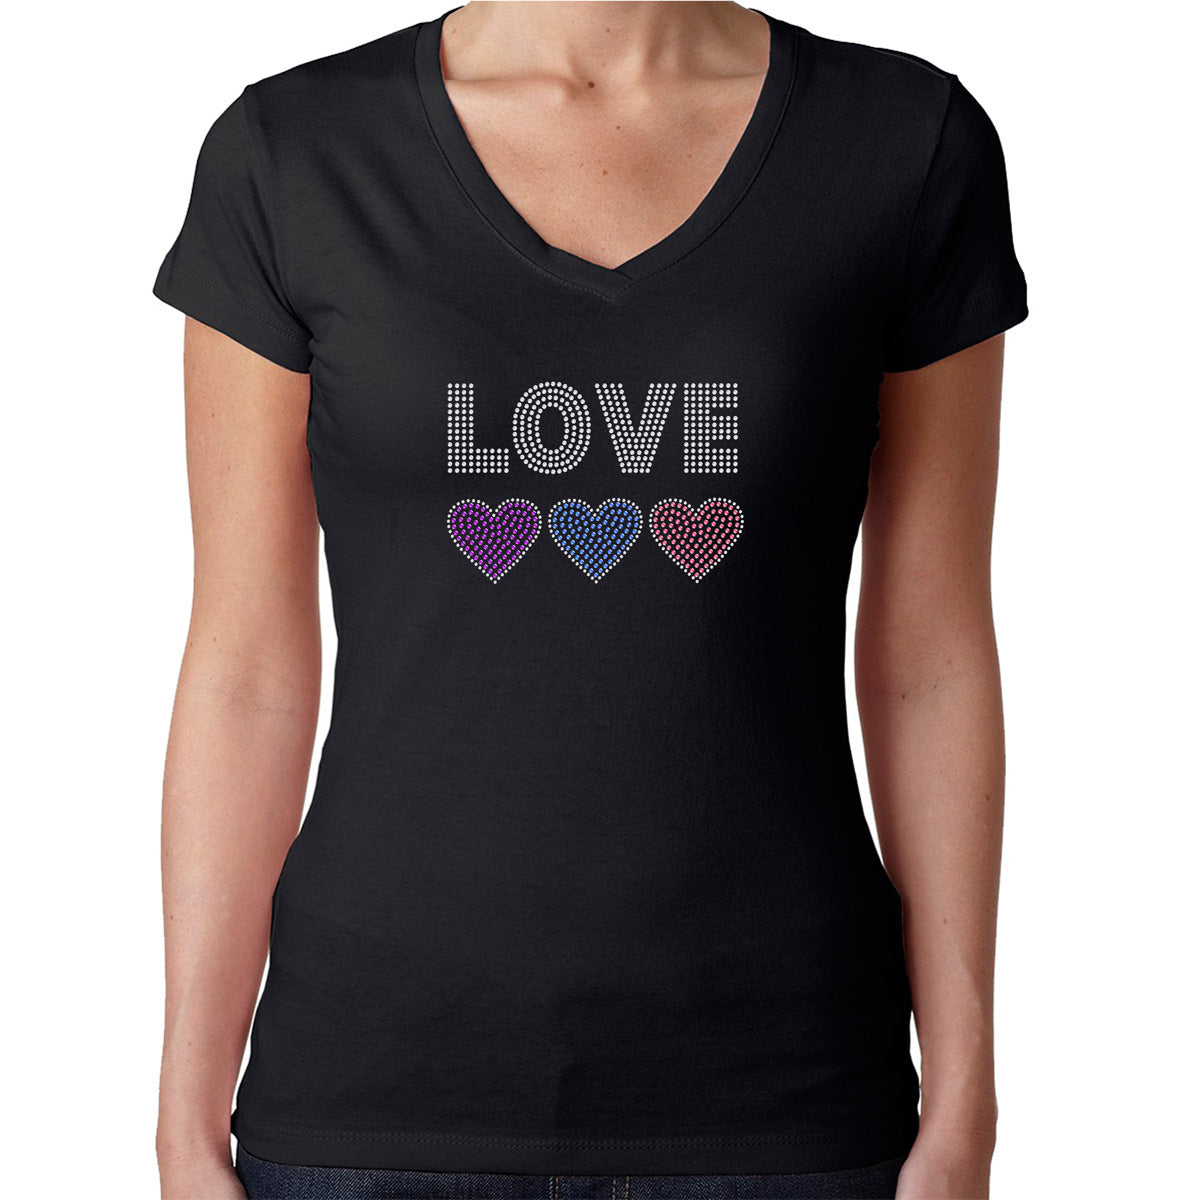 Womens T-Shirt Rhinestone Bling Black Fitted Tee Love 3 Hearts Pink Purple